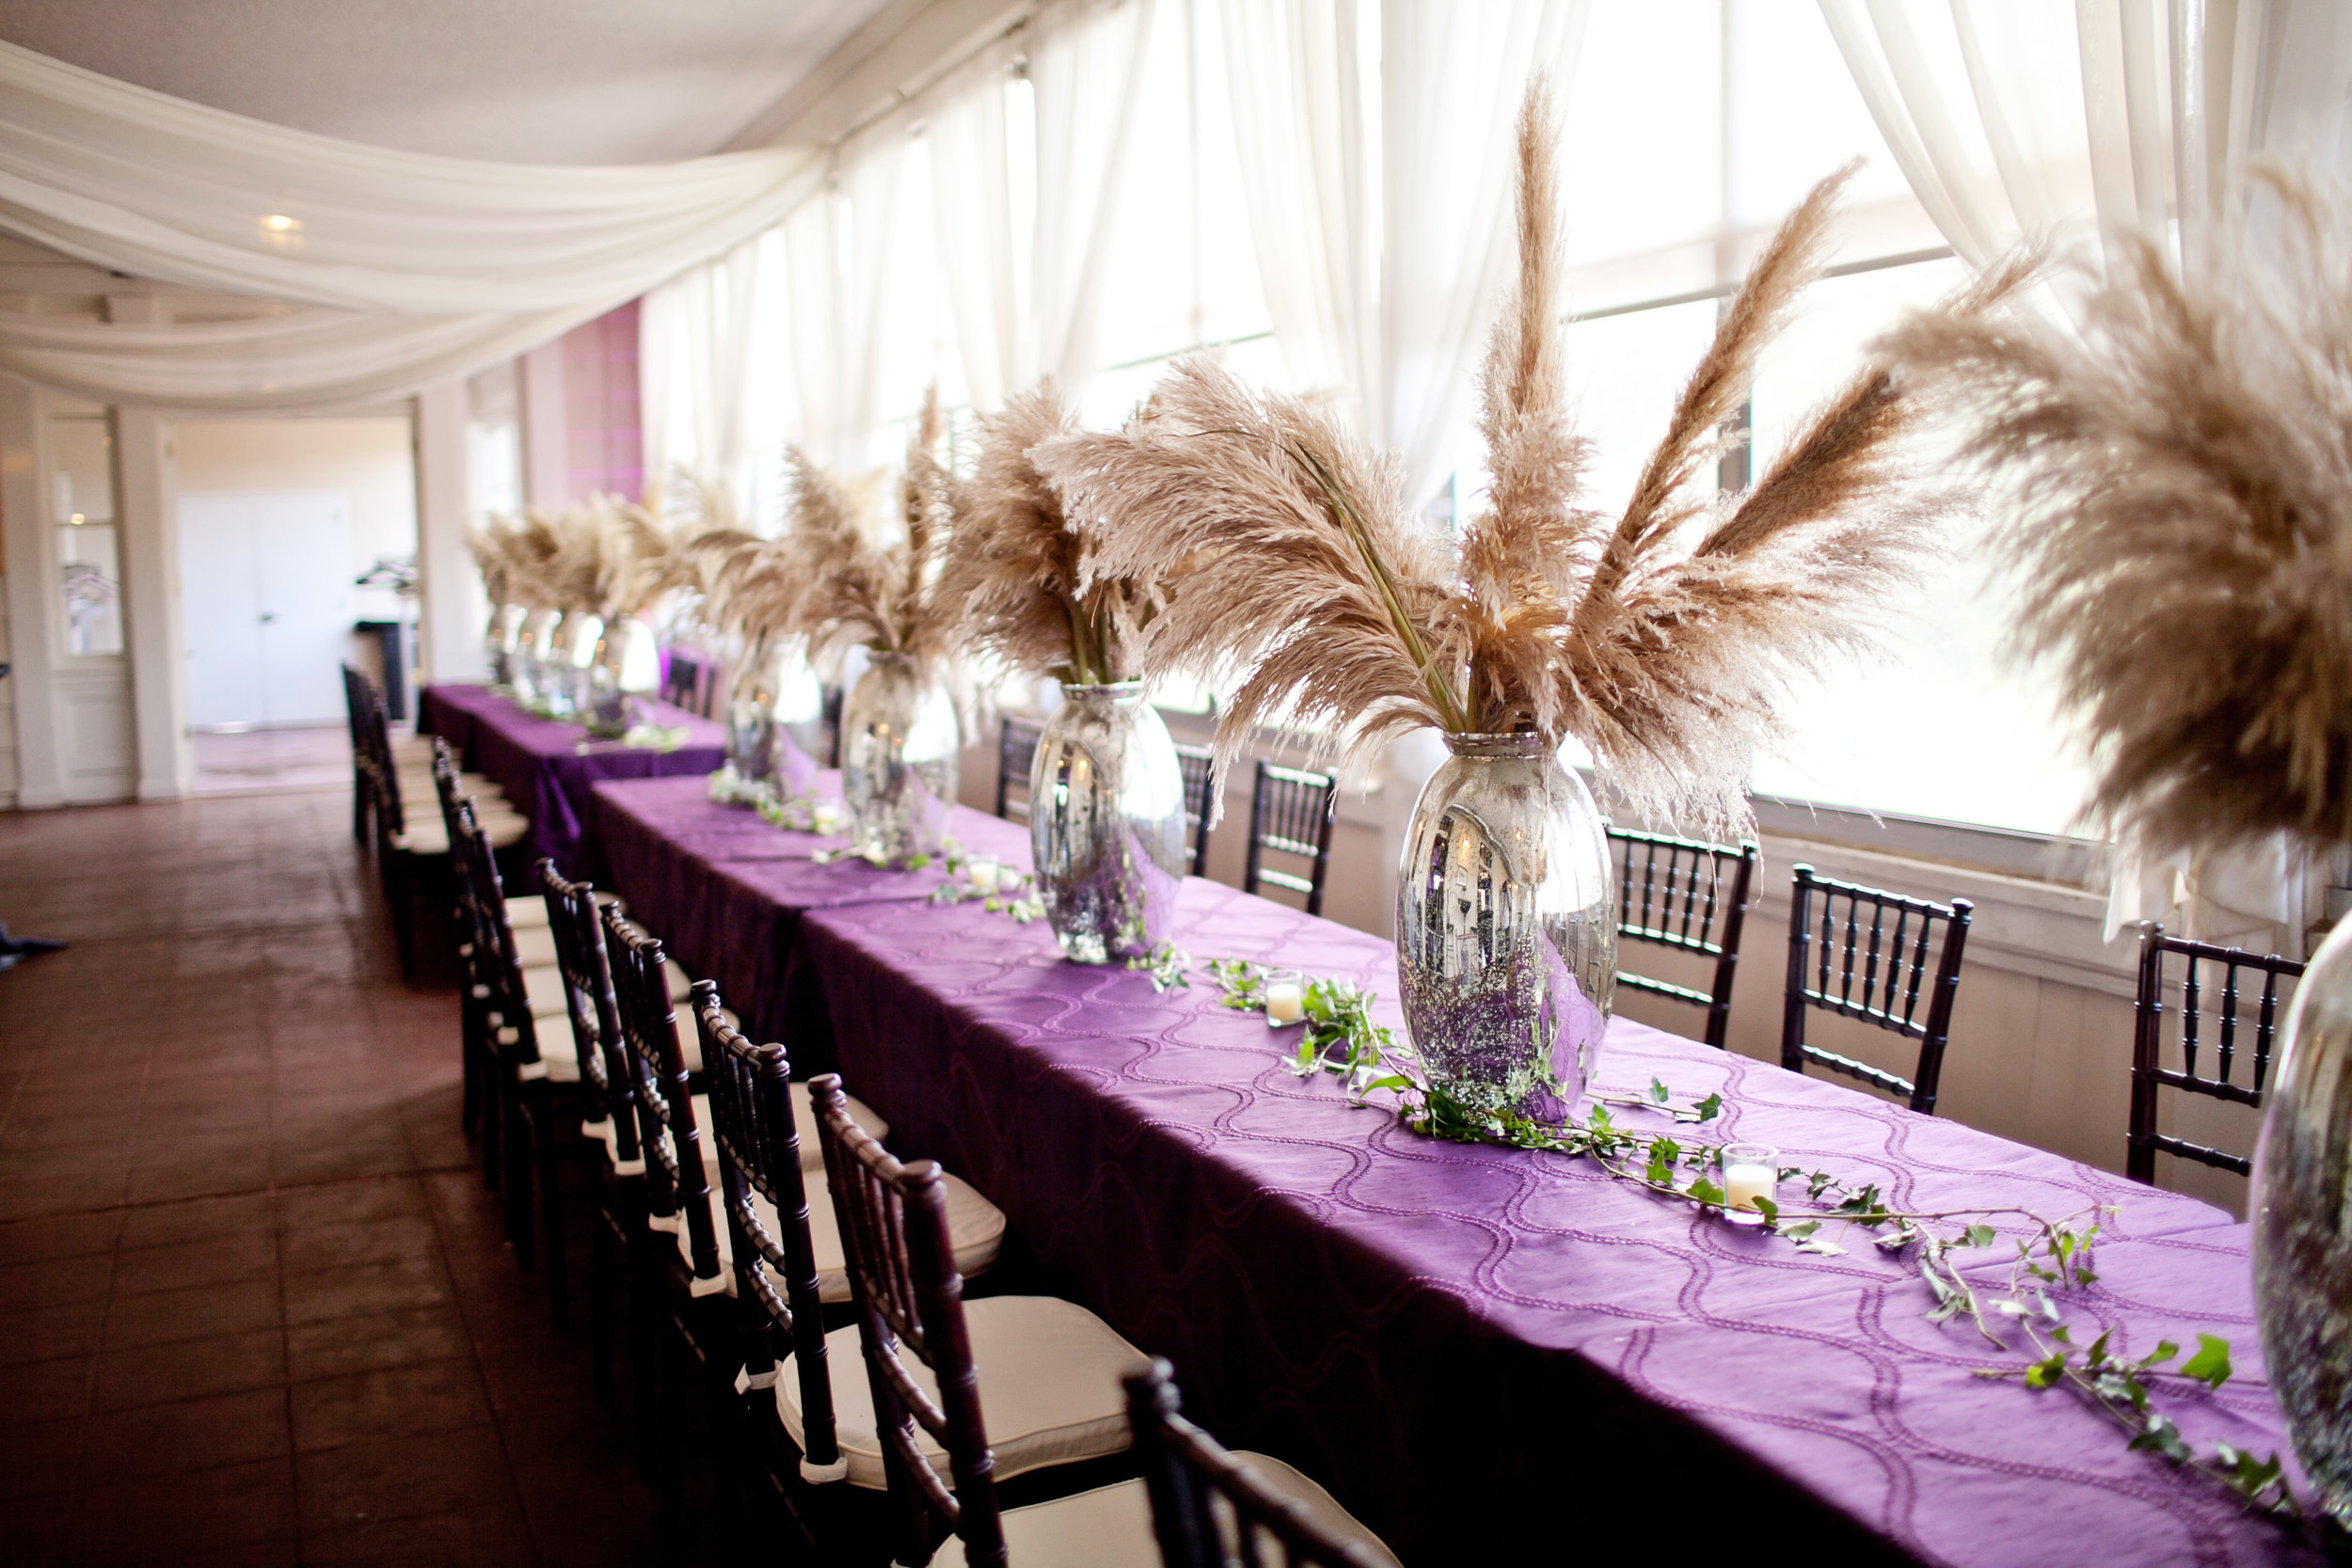 45 unique wedding decor large centerpieces pampas grass centerpieces purple and white wedding purple table cloths silver vases with pampas grass Life Design Events .jpg